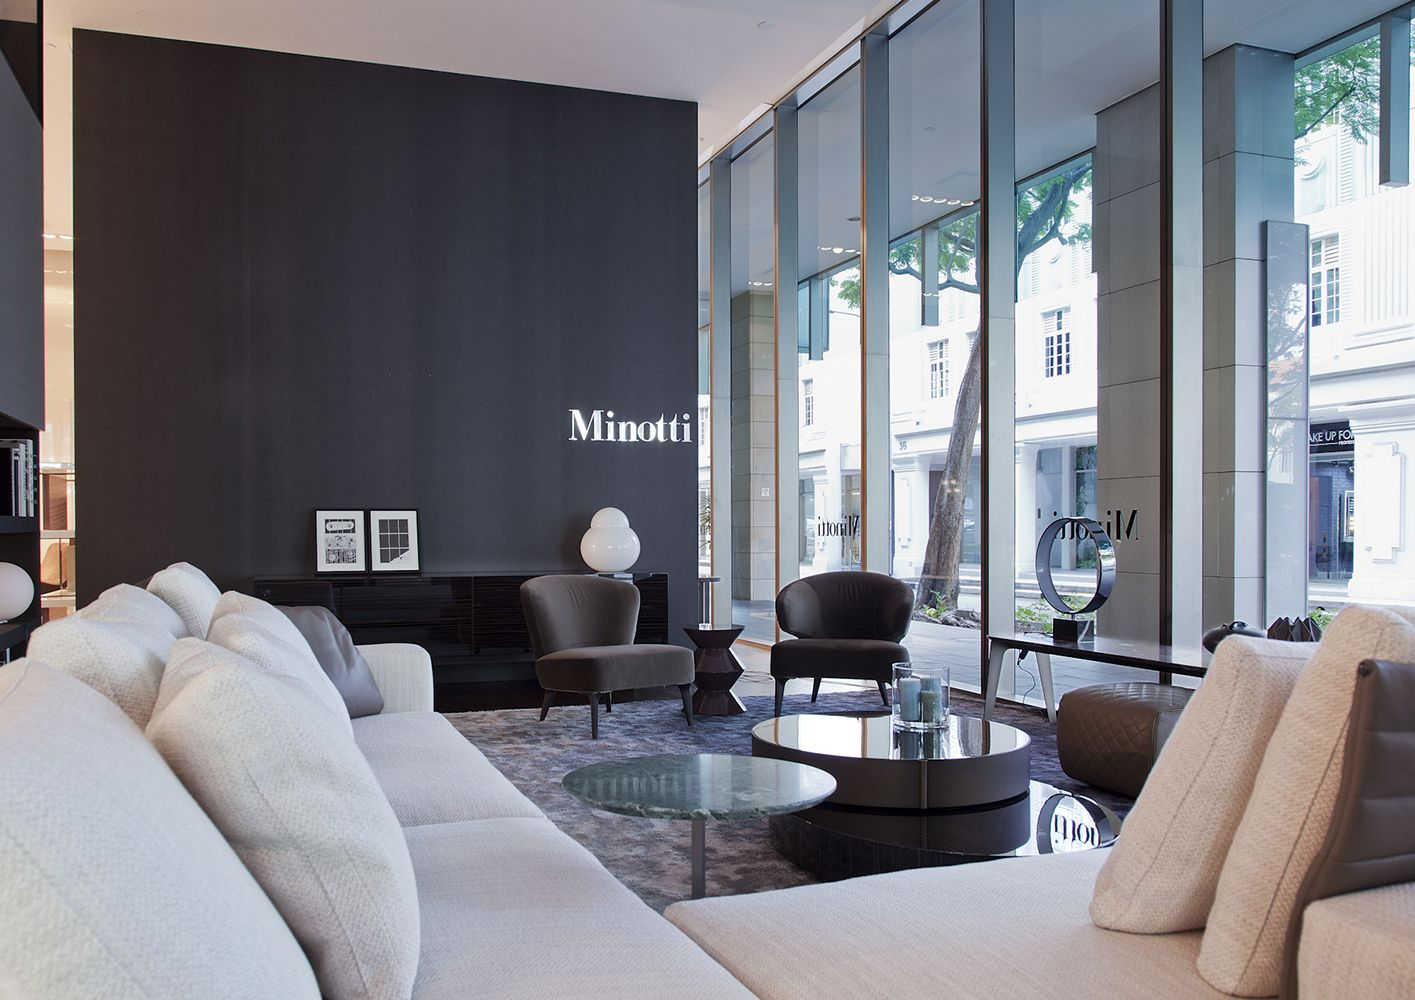 Singapore Flagship Store Minotti Singapore Flagship Store Luxury Living Room Interior Design Singapore Luxury Living